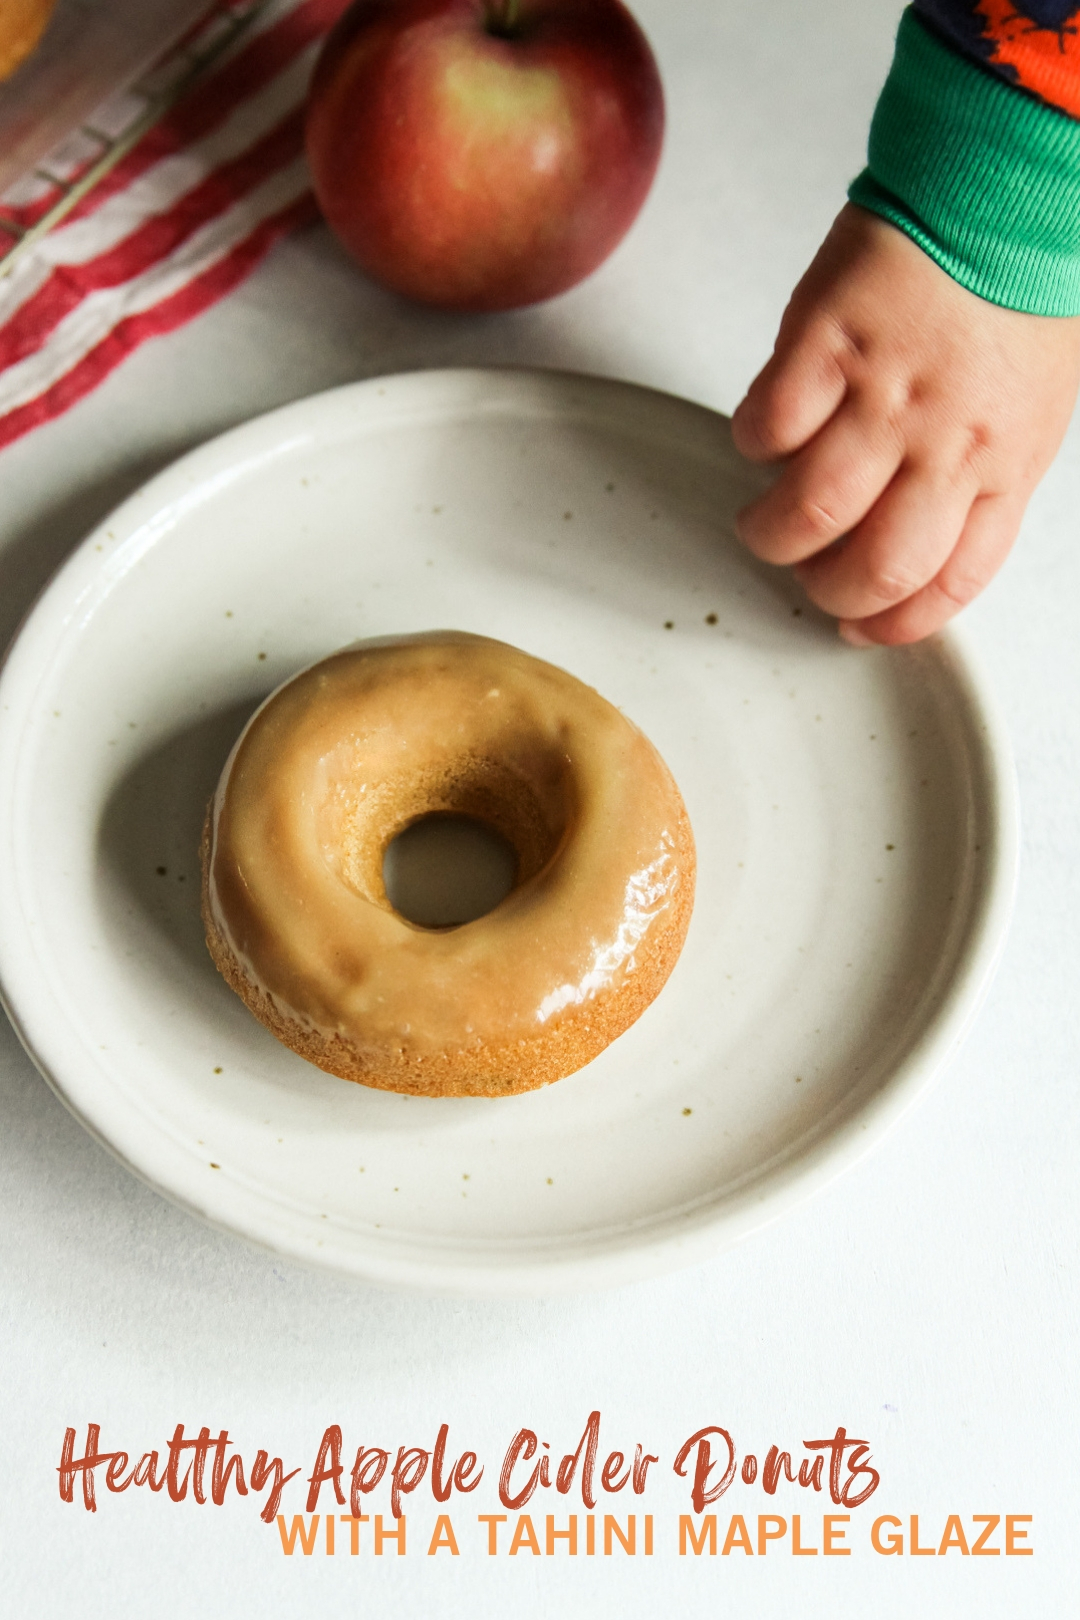 Healthy apple cider donuts with a tahini maple glaze